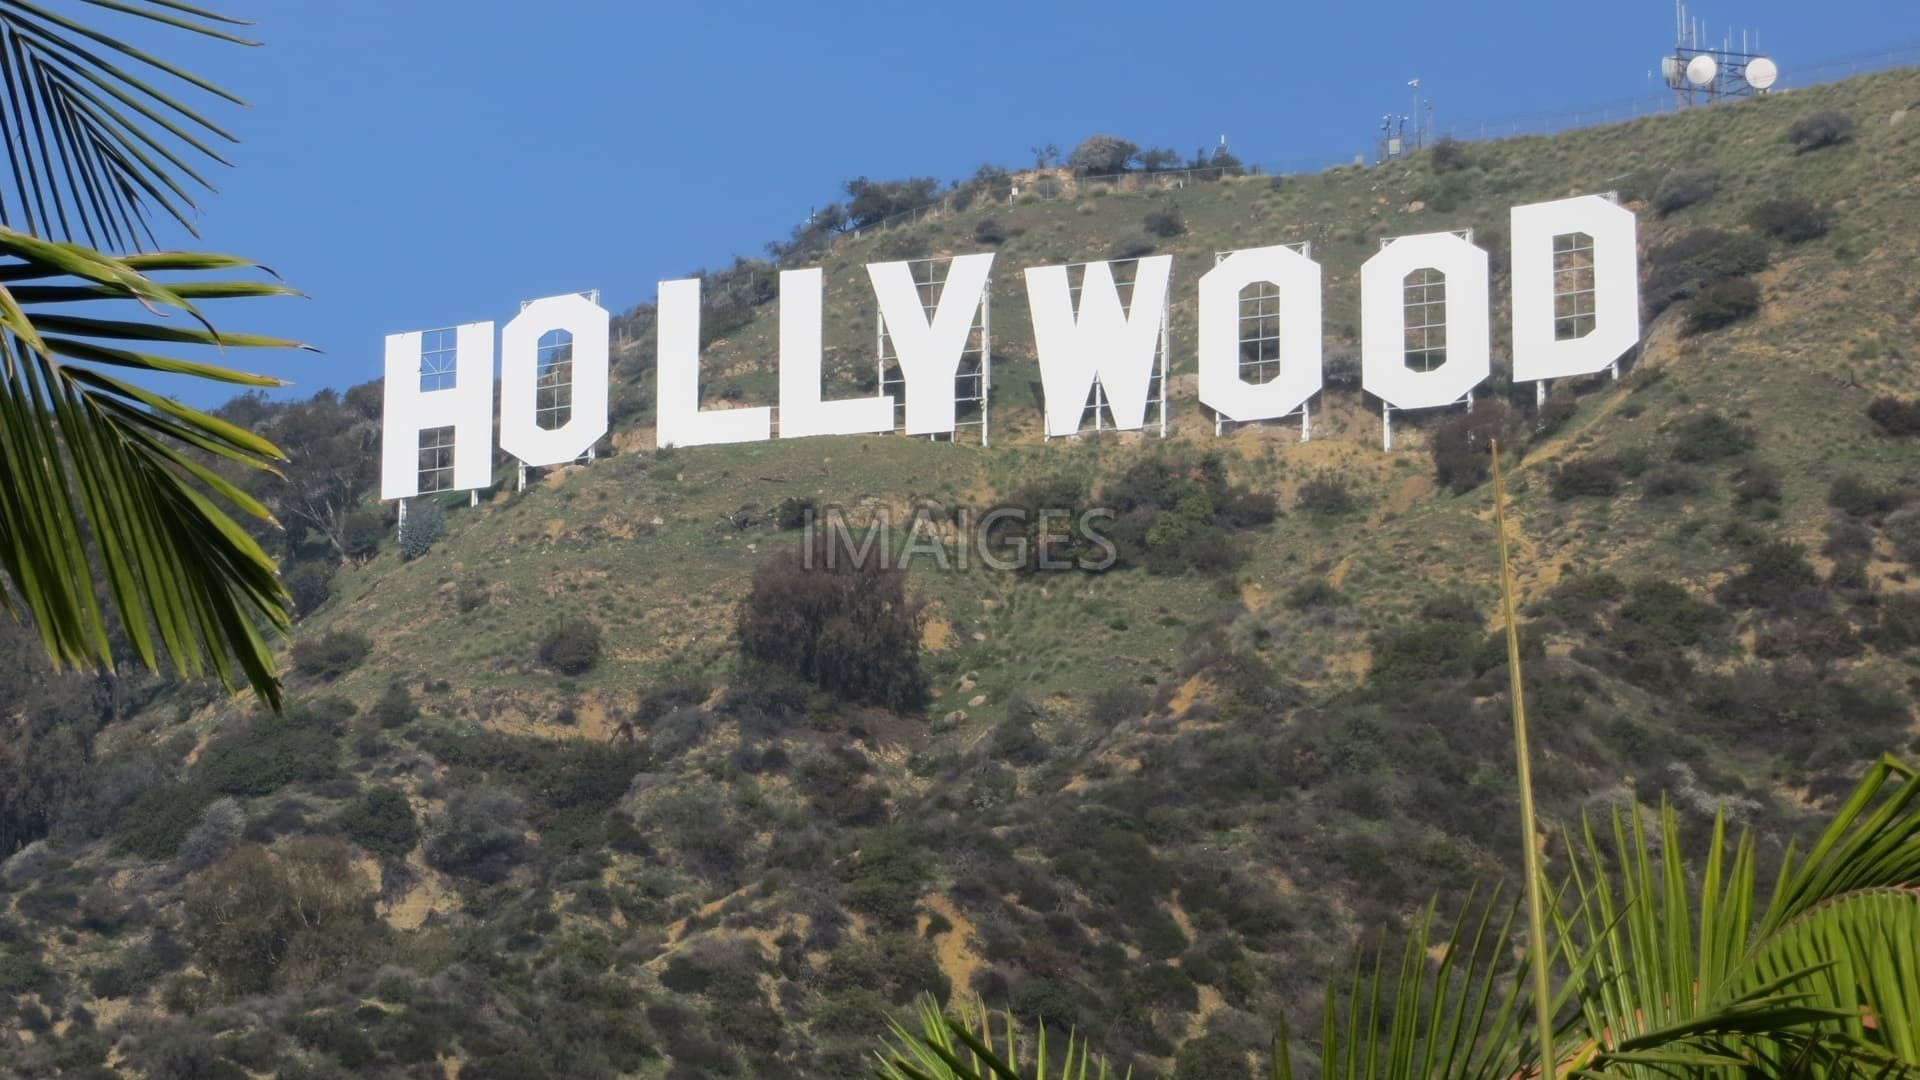 Stock Photo Of Hollywood At Los Angeles California - Hollywood Sign , HD Wallpaper & Backgrounds